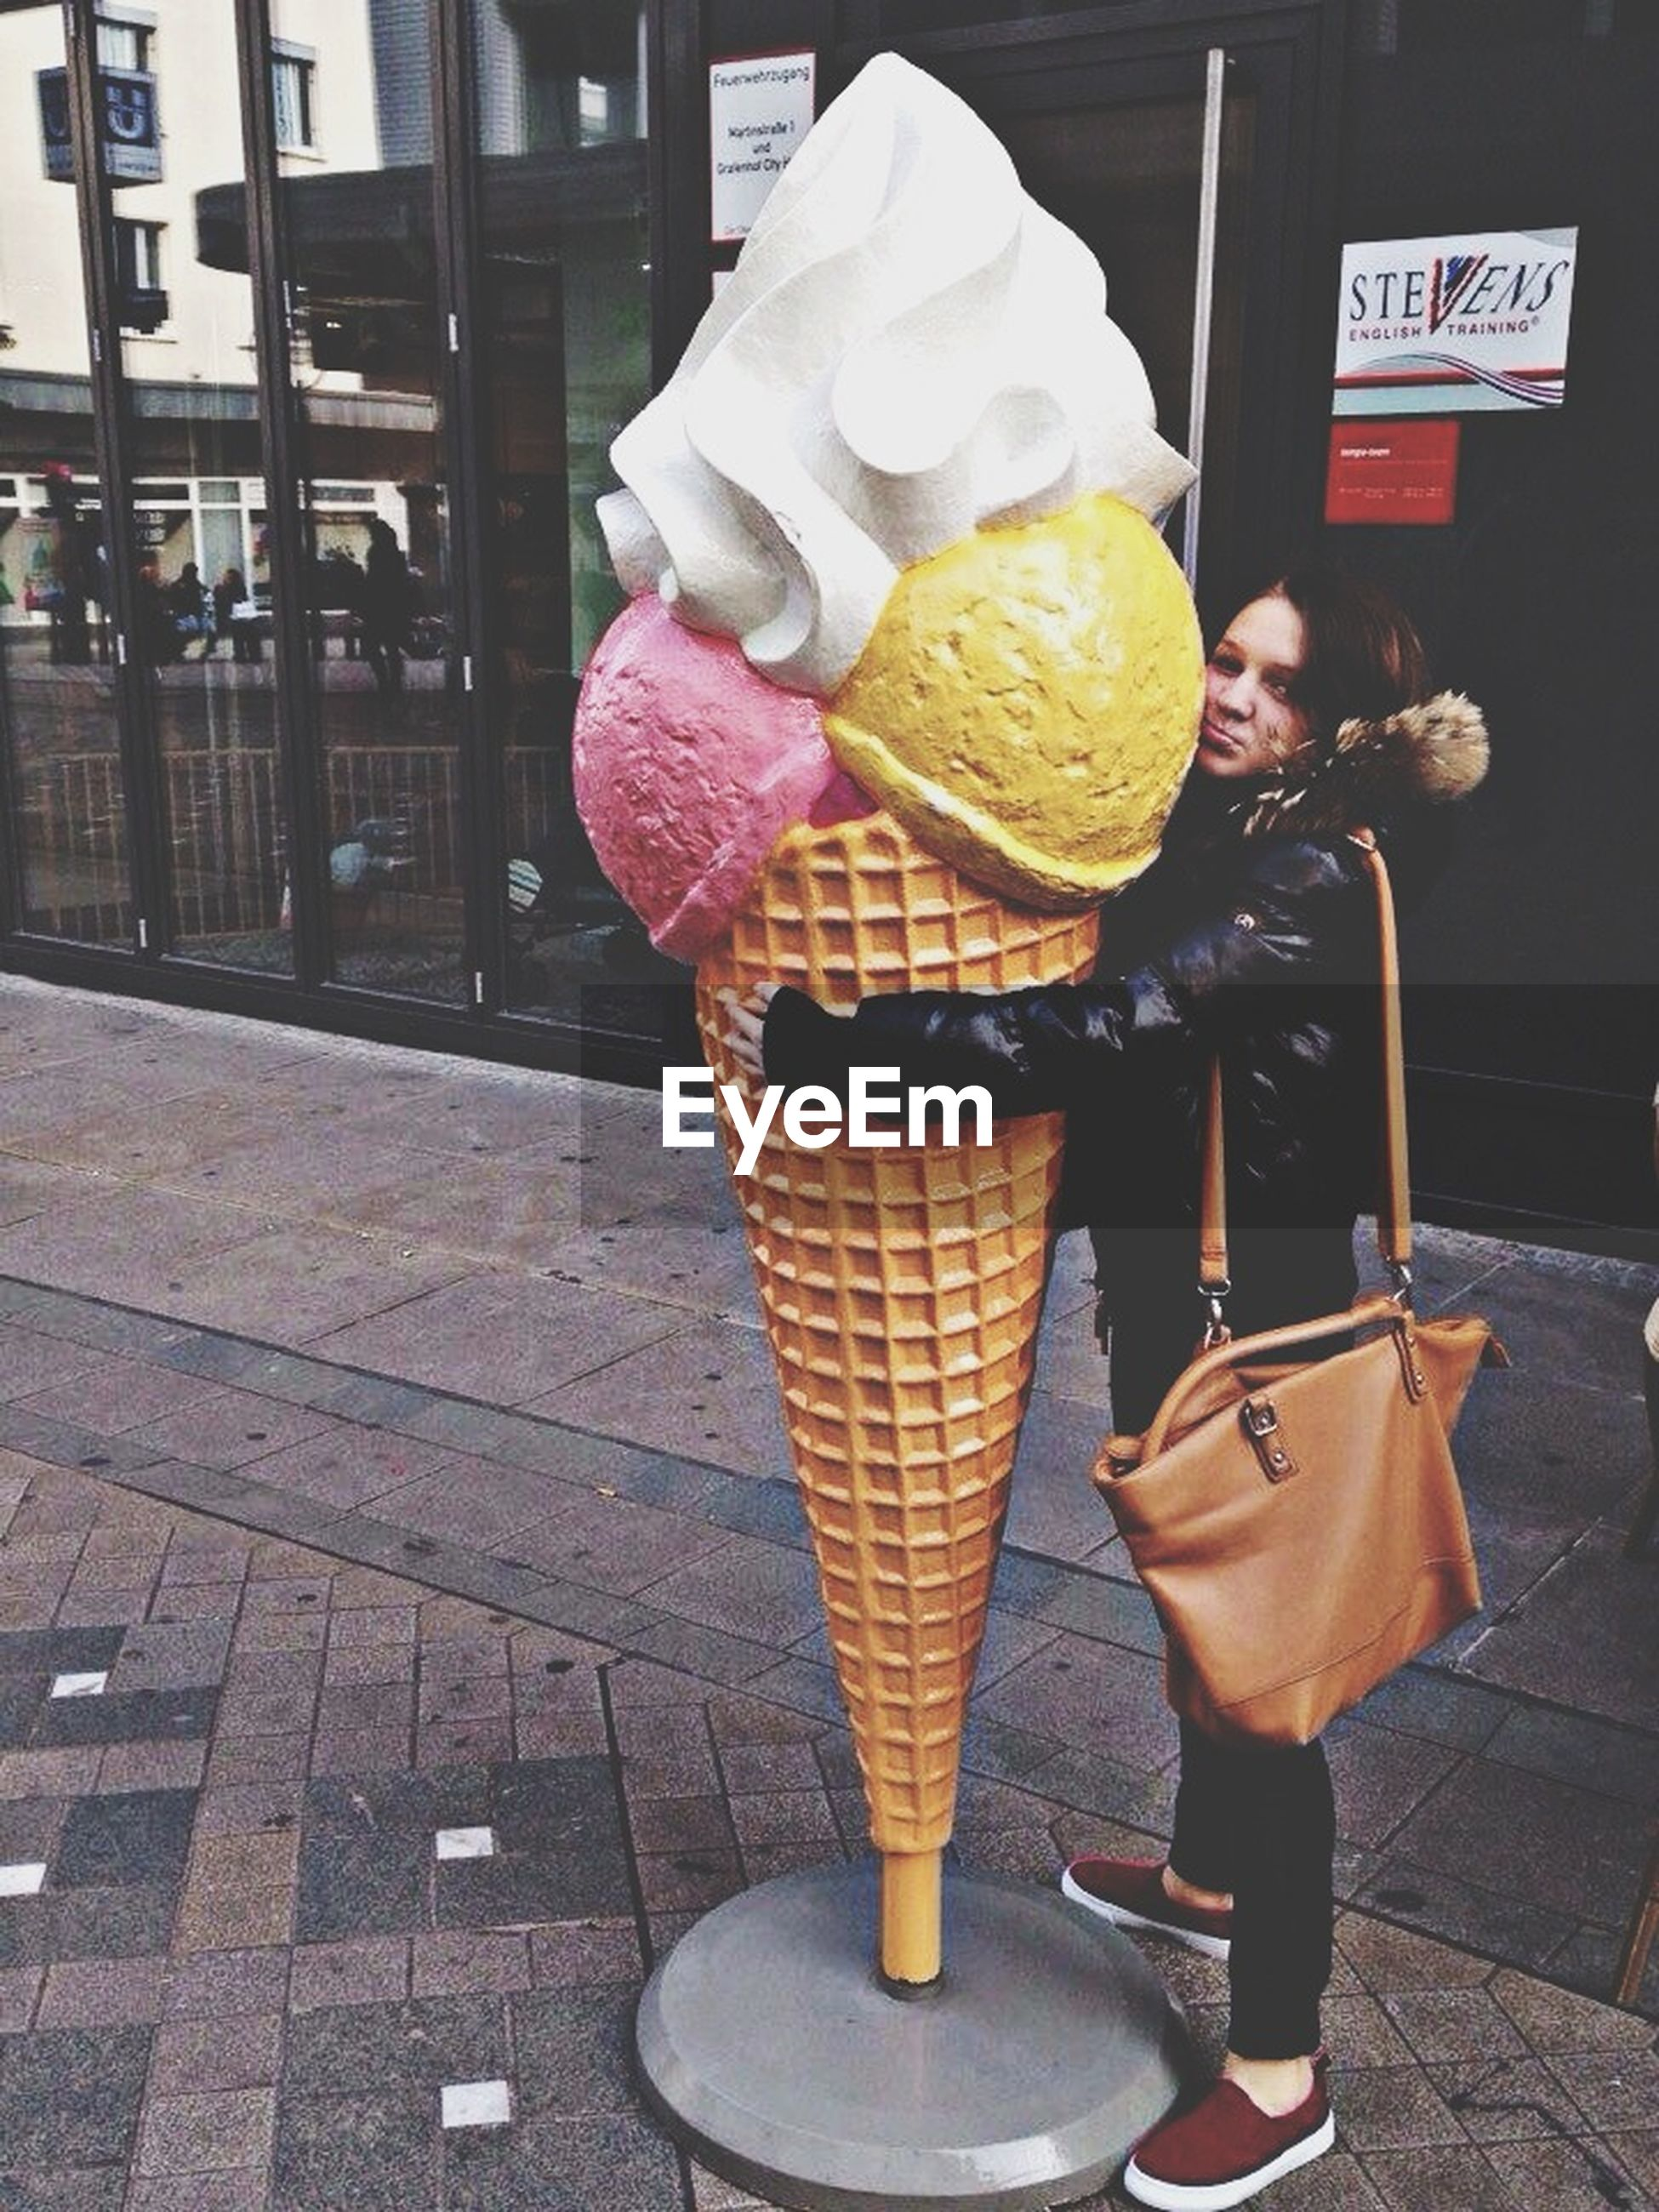 food and drink, holding, food, sweet food, freshness, person, lifestyles, street, men, unhealthy eating, dessert, ice cream, frozen food, incidental people, table, casual clothing, leisure activity, indoors